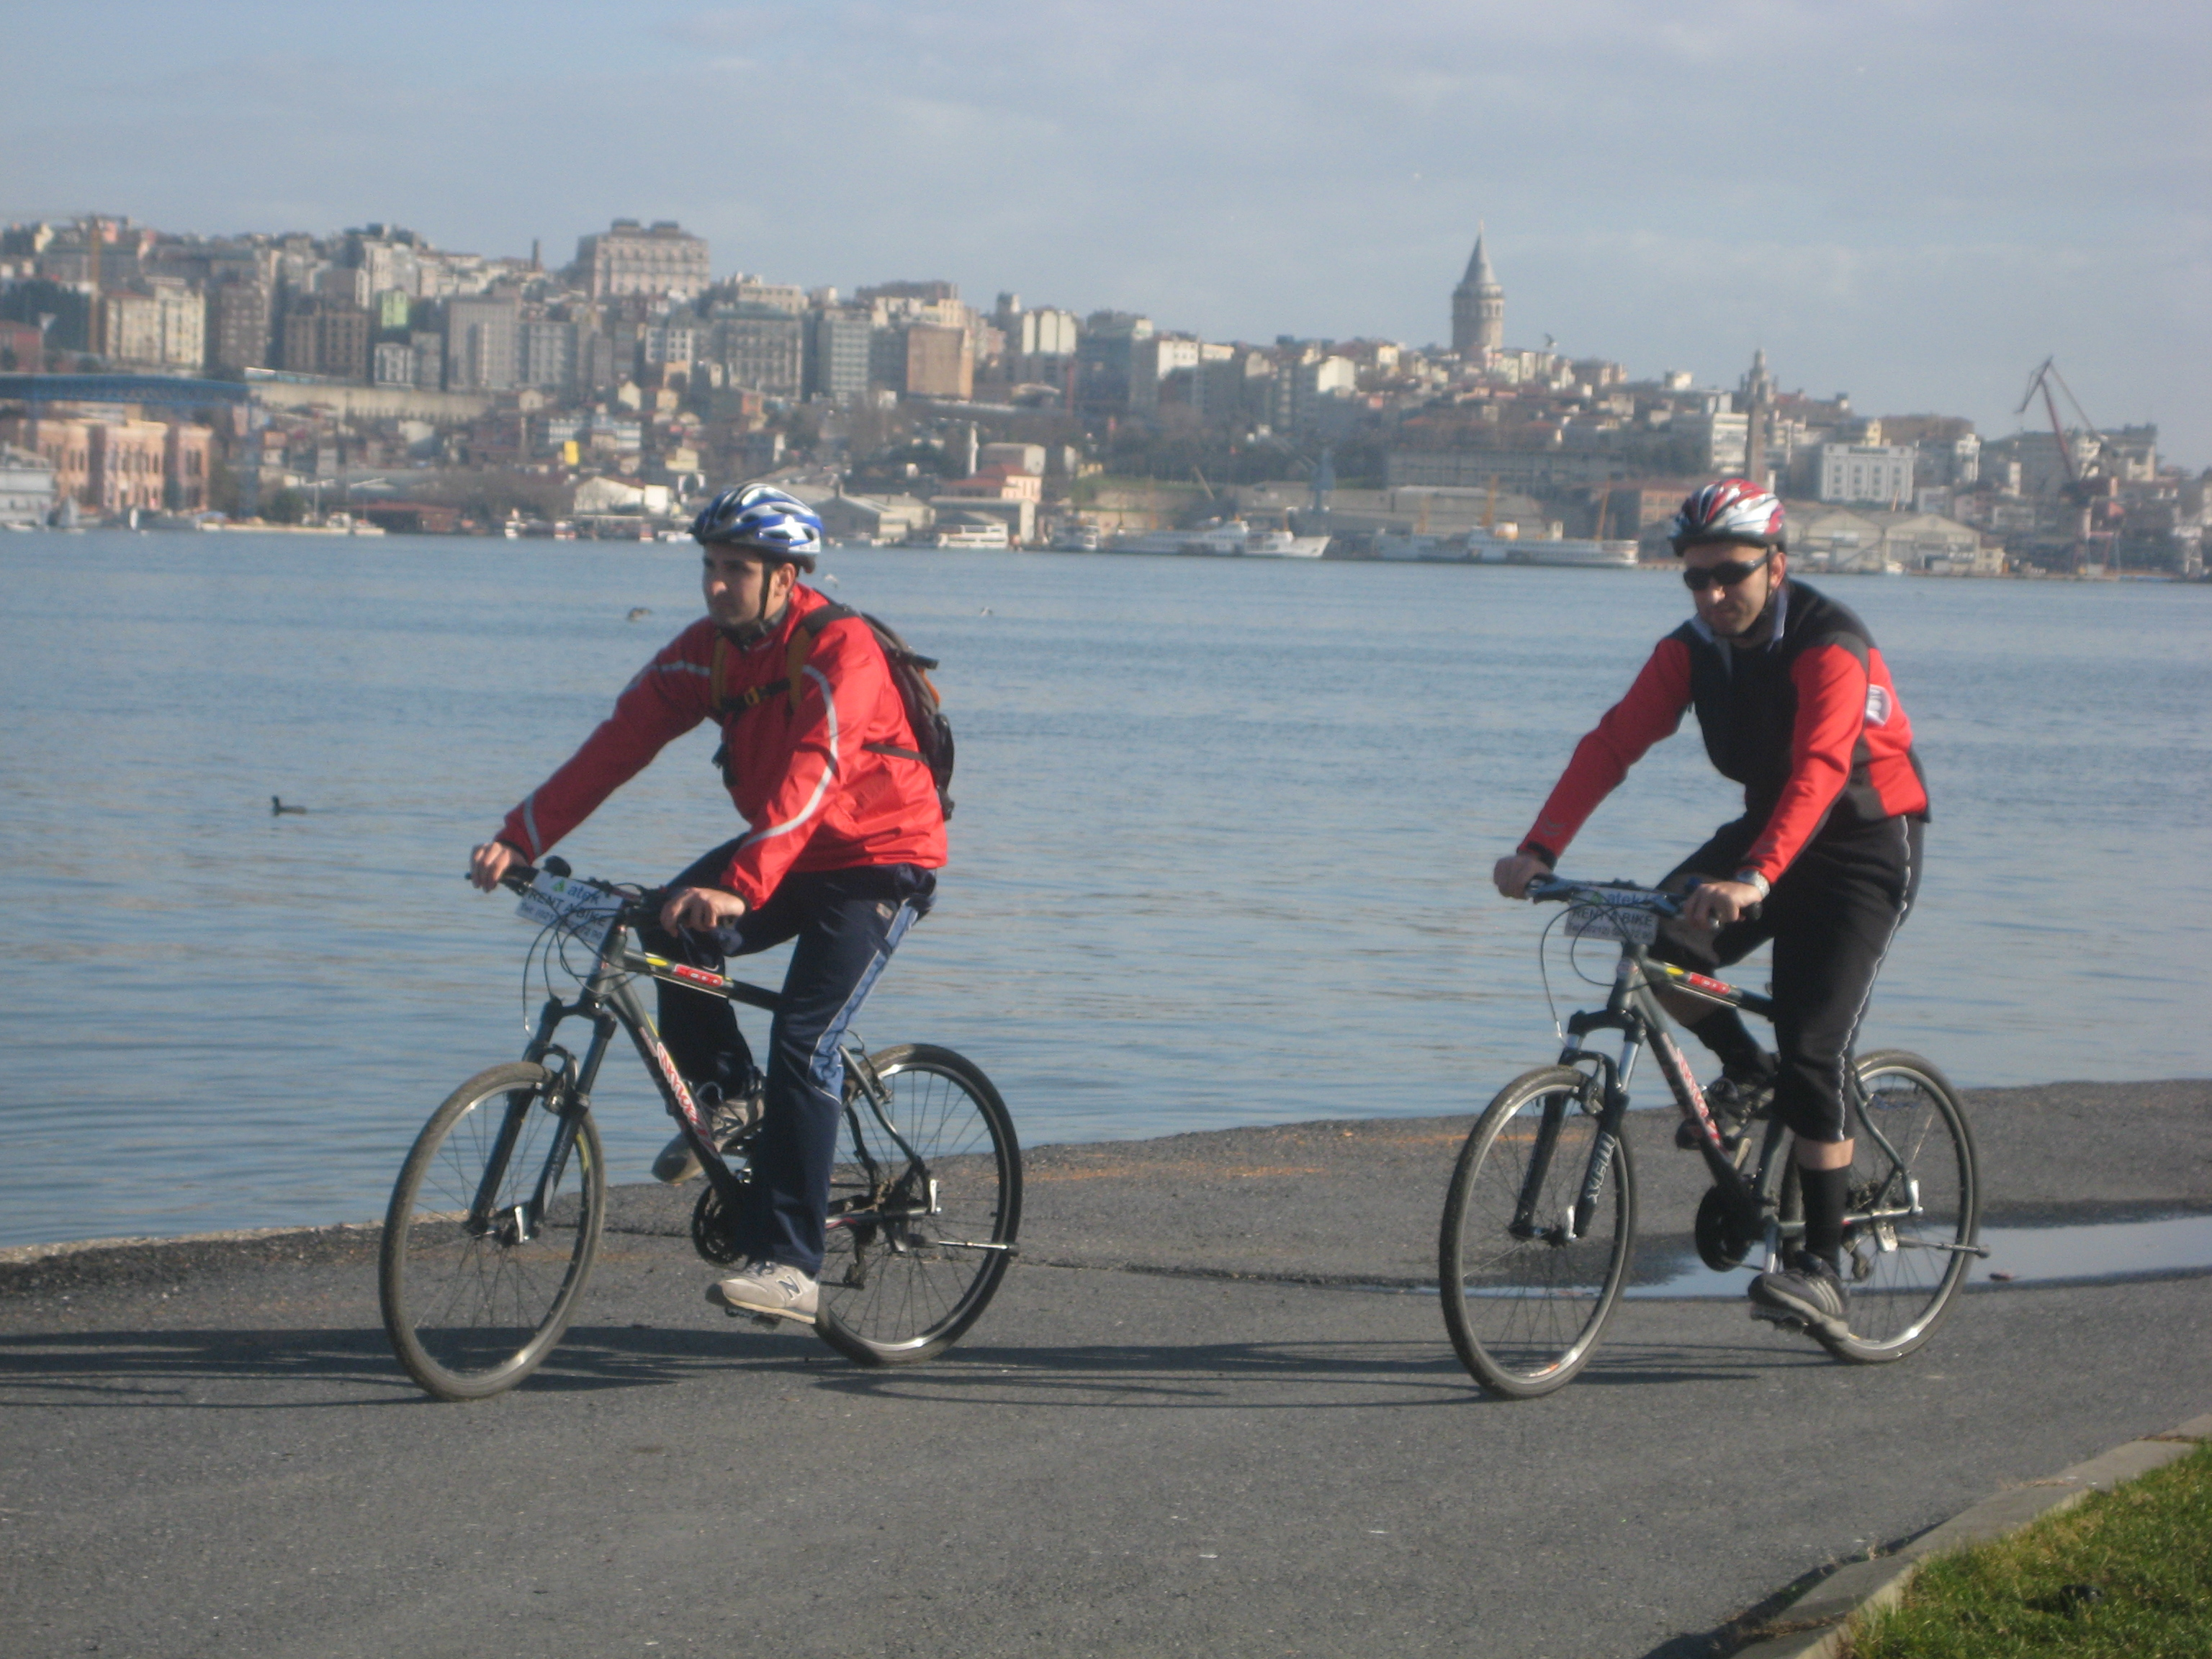 Riding on the waterfront